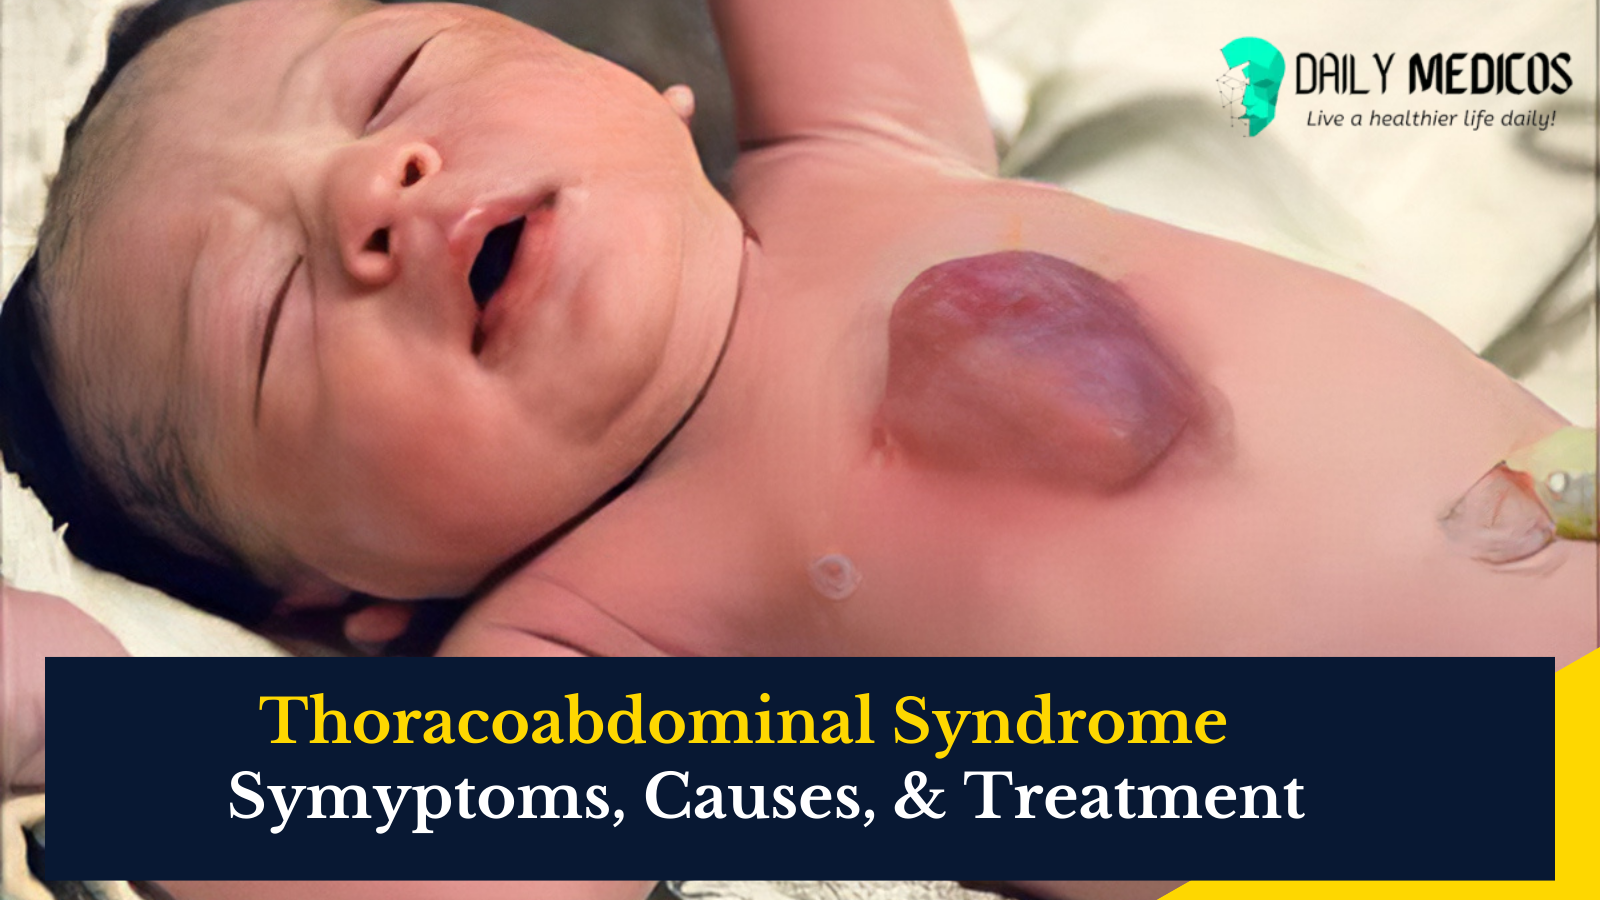 Thoracoabdominal Syndrome: All You Need to Know [Types, Diagnosis & Treatment] 1 - Daily Medicos